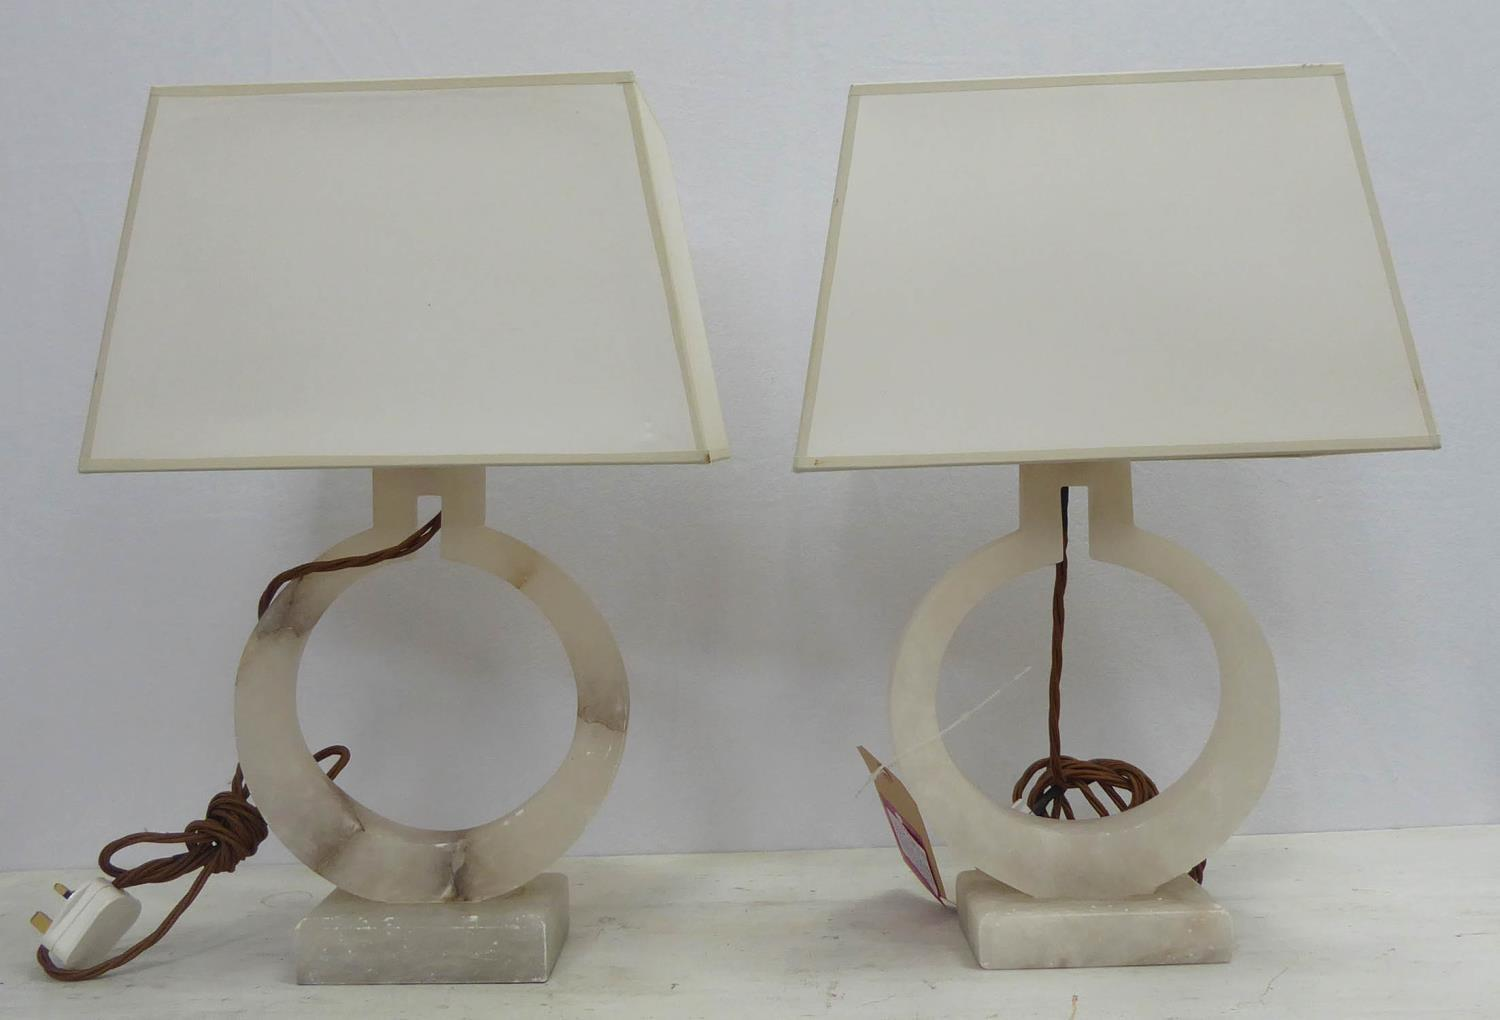 VISUAL COMFORT AND CO E F CHAPMAN RING TABLE LAMPS, a pair, with shades, 52cm H. (2)